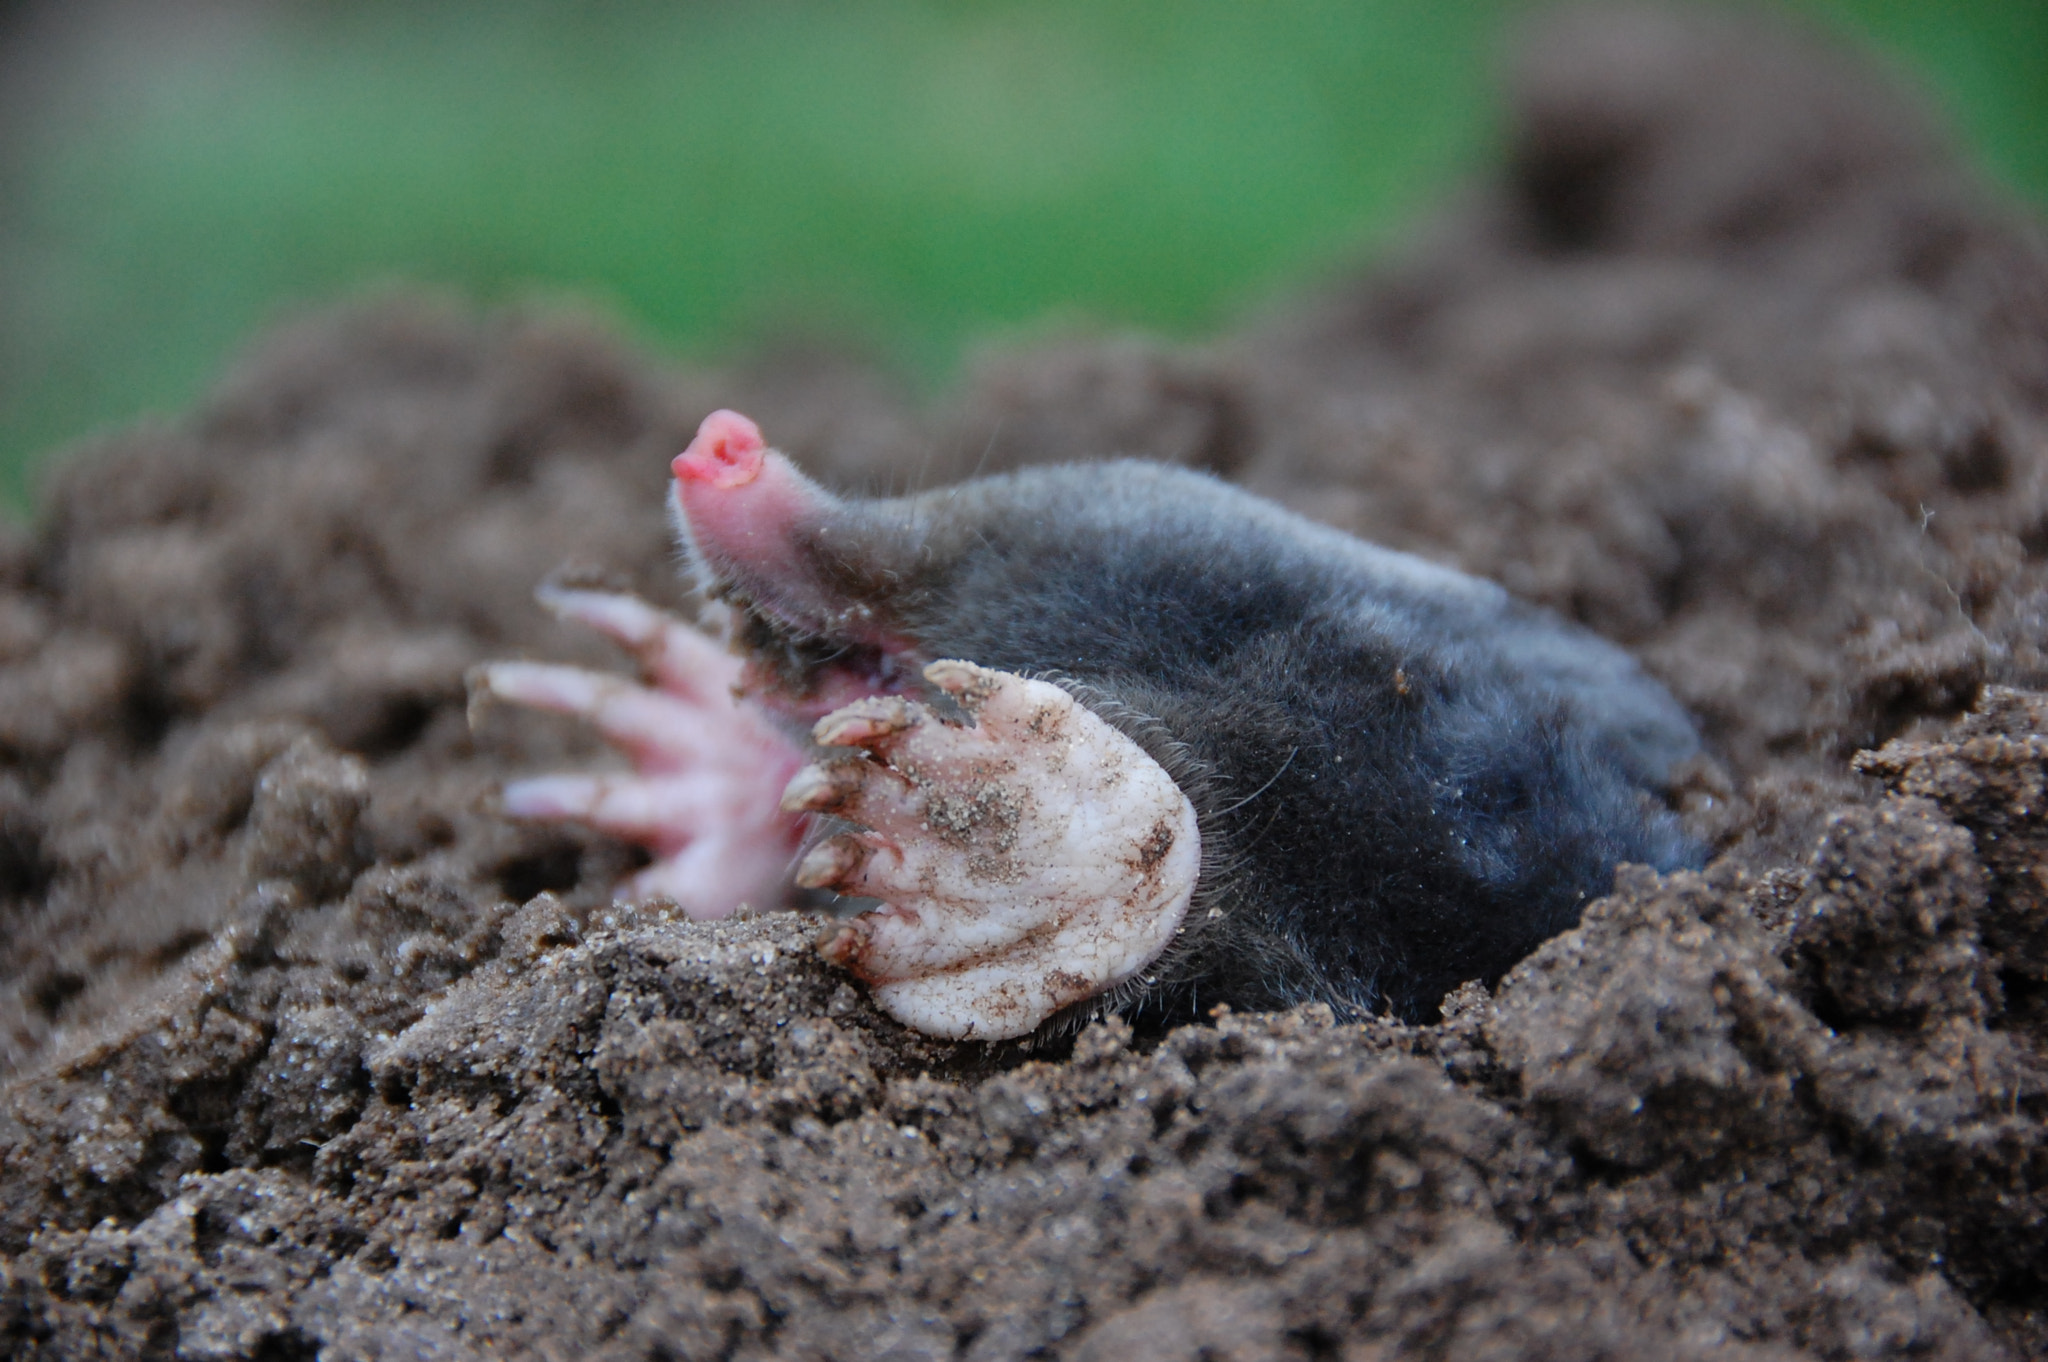 Photograph Mole by Ruud Eelderink on 500px